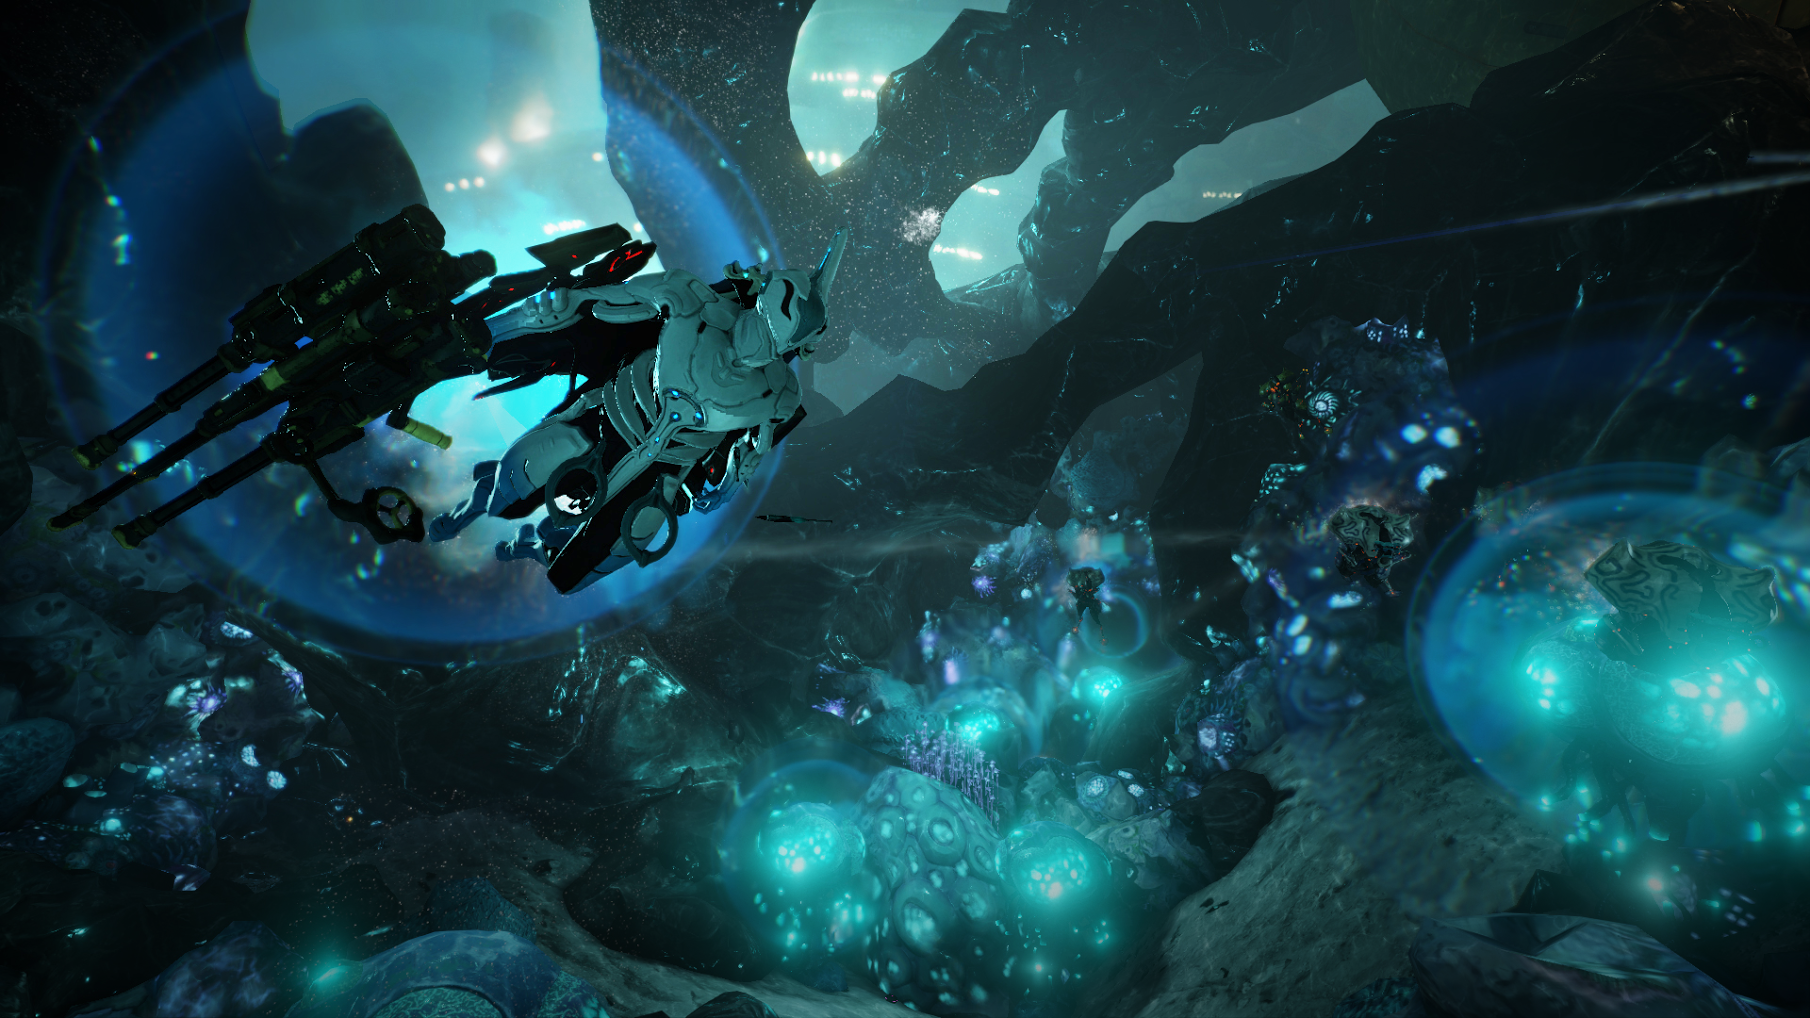 Warframe to get major 'Echoes of the Sentient' update this week